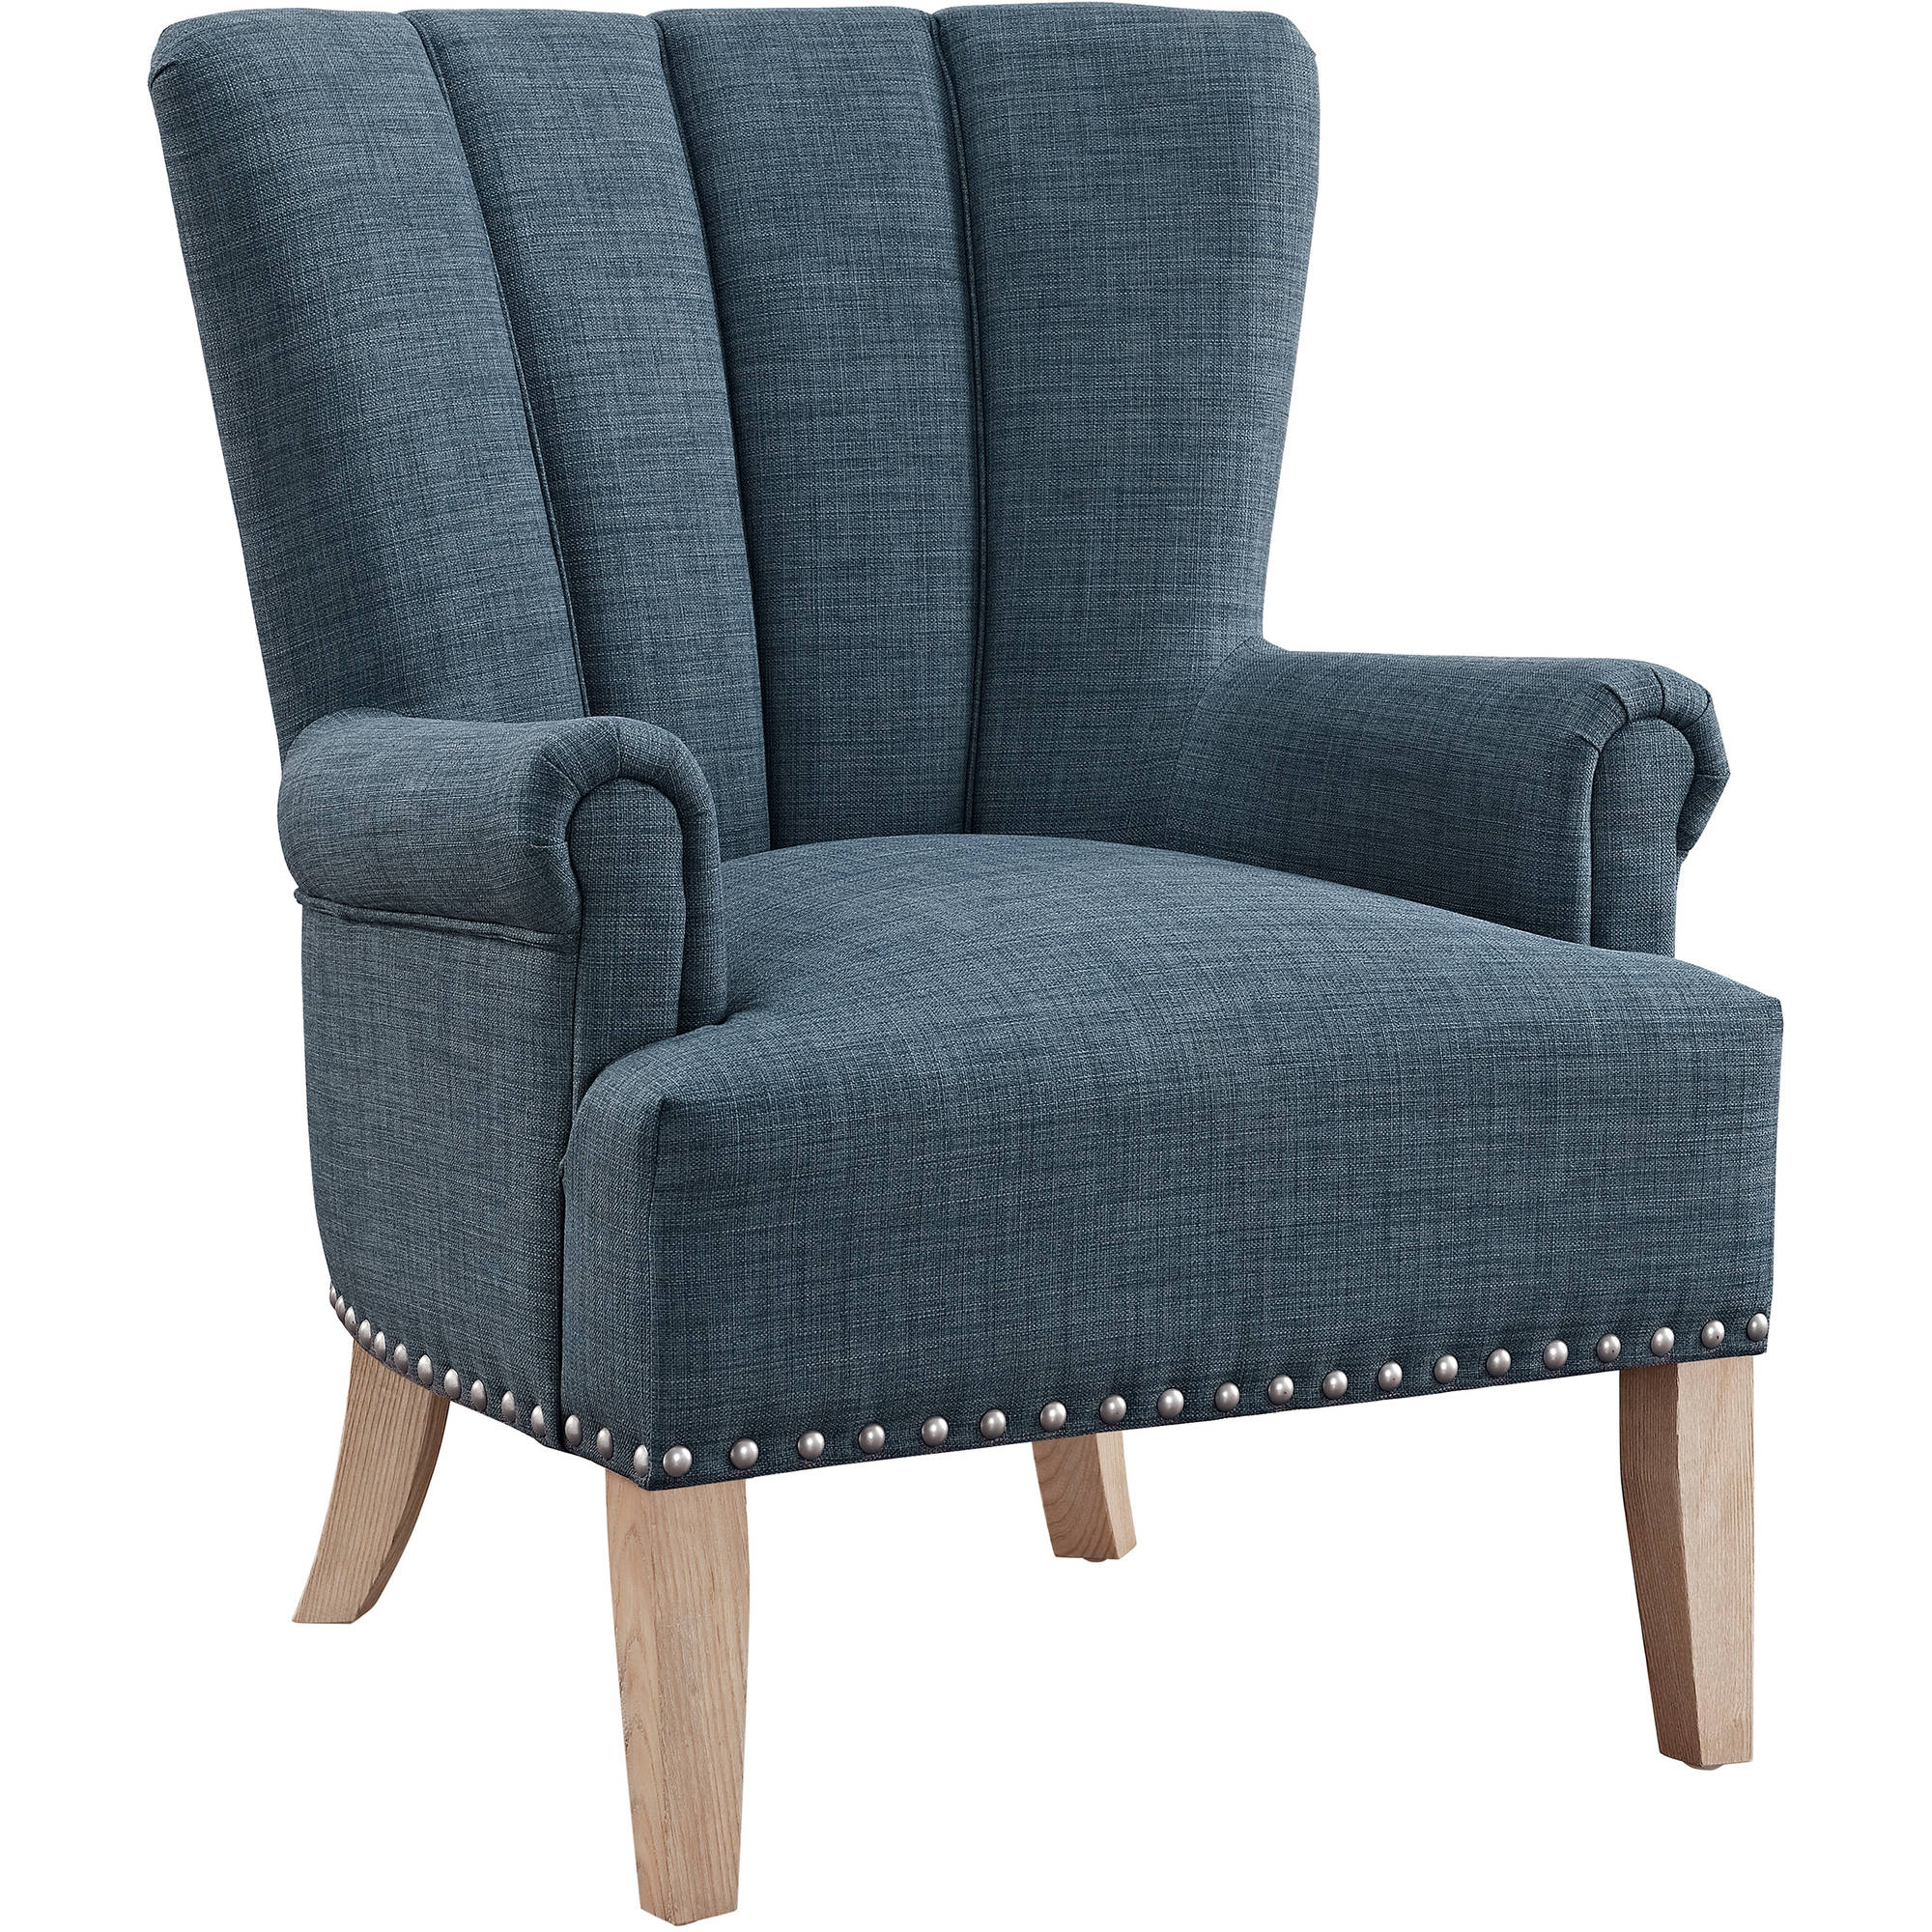 Better Homes and Gardens Accent Chair Multiple Colors Walmart